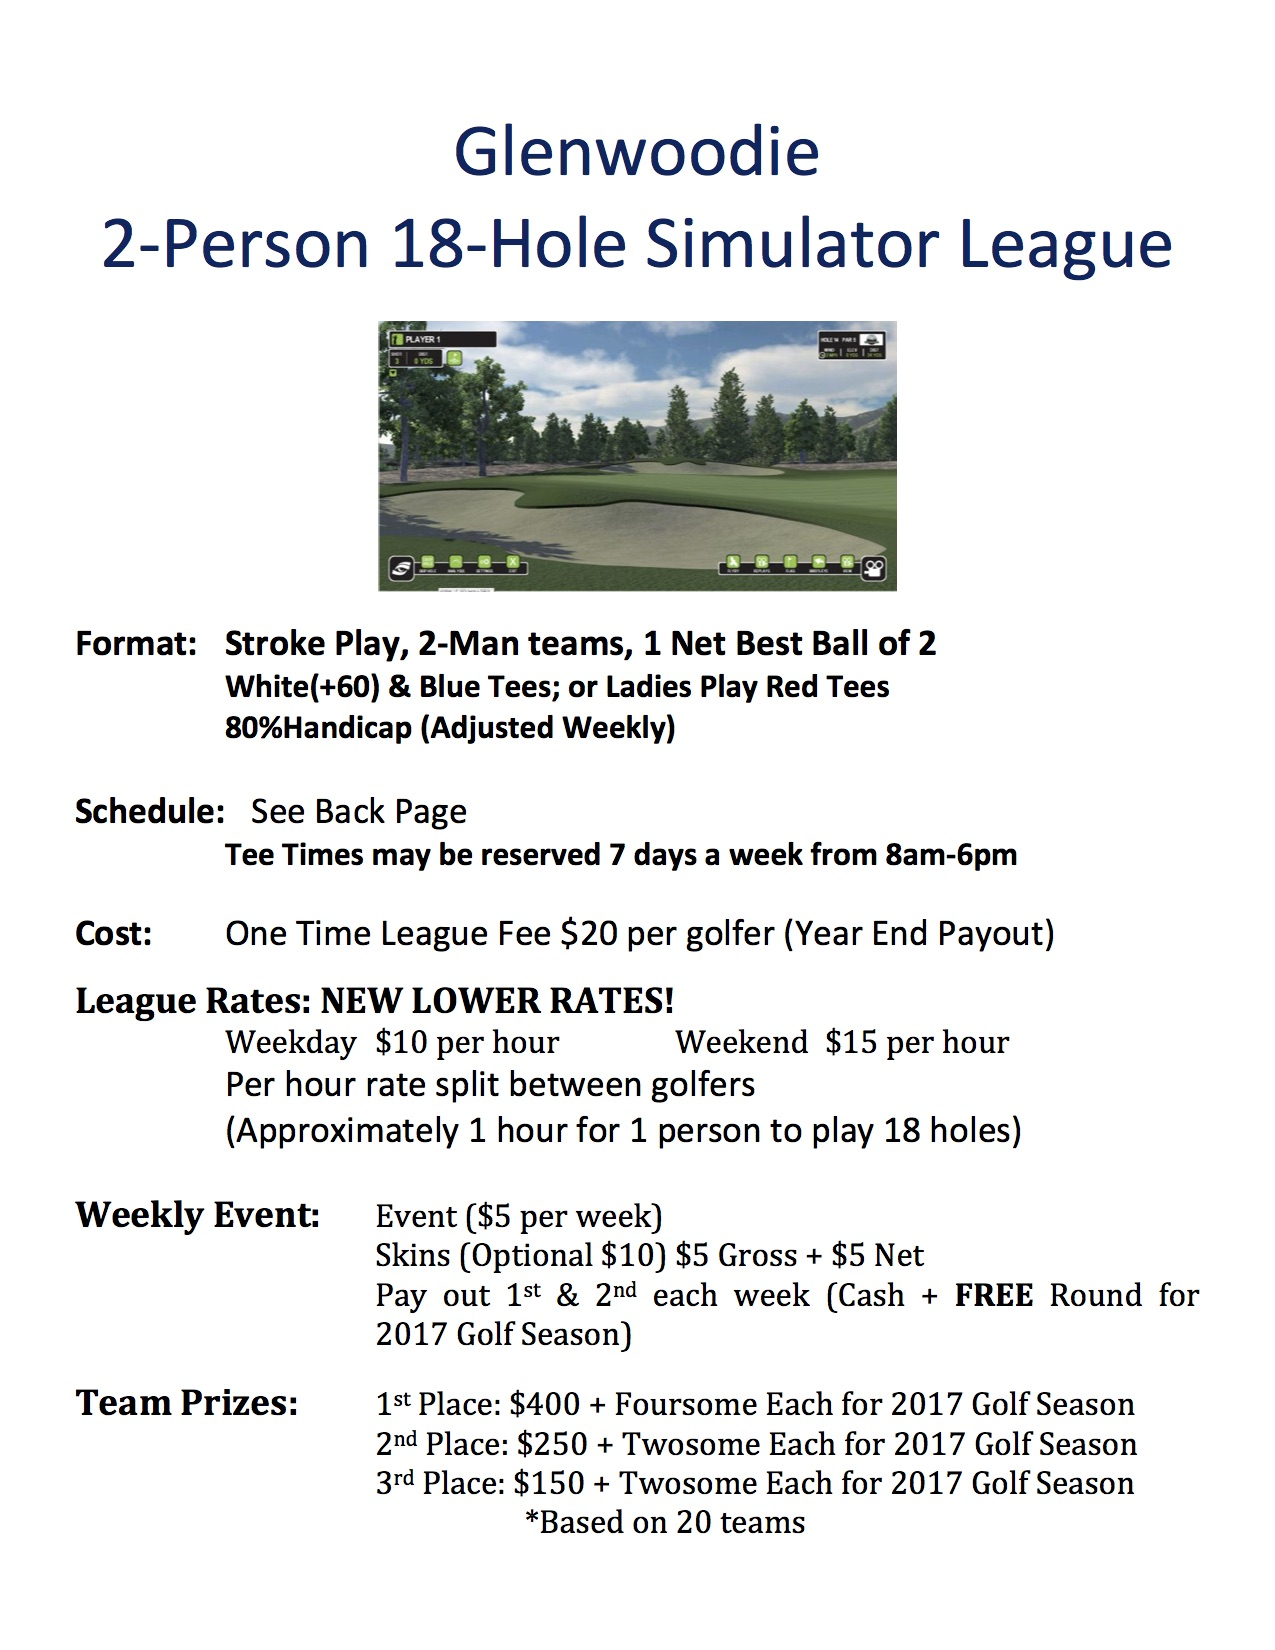 simulator-league-2016-2017